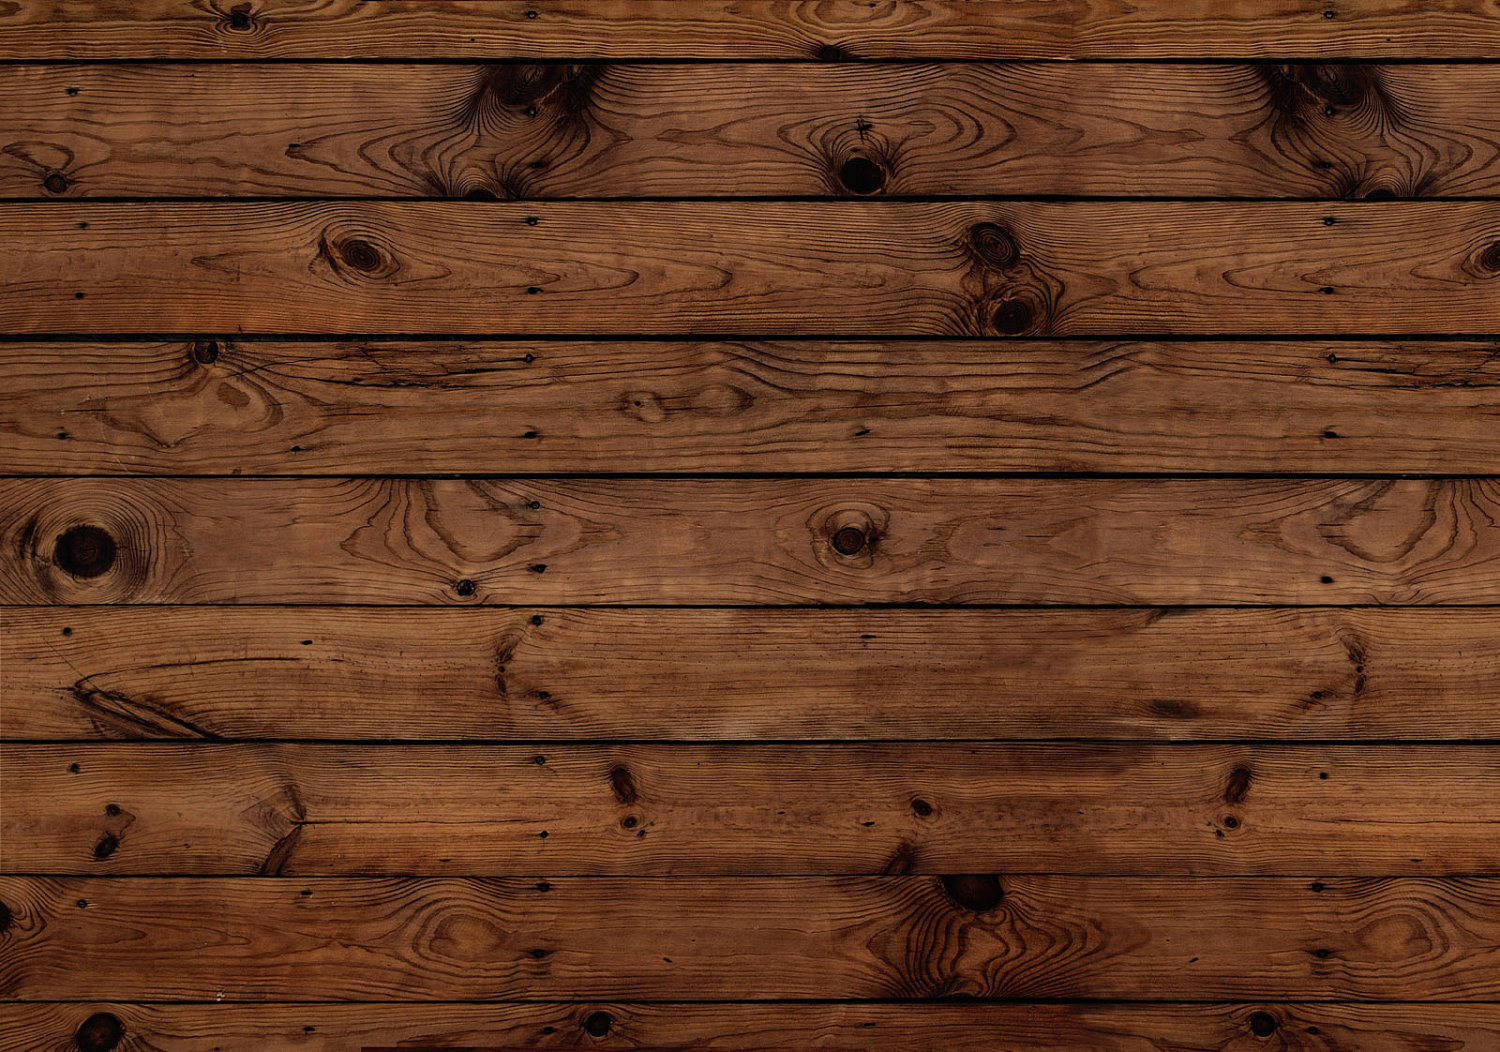 Darkwood Plank Faux Wood Rug Flooring Background Or By Funlicious HTML